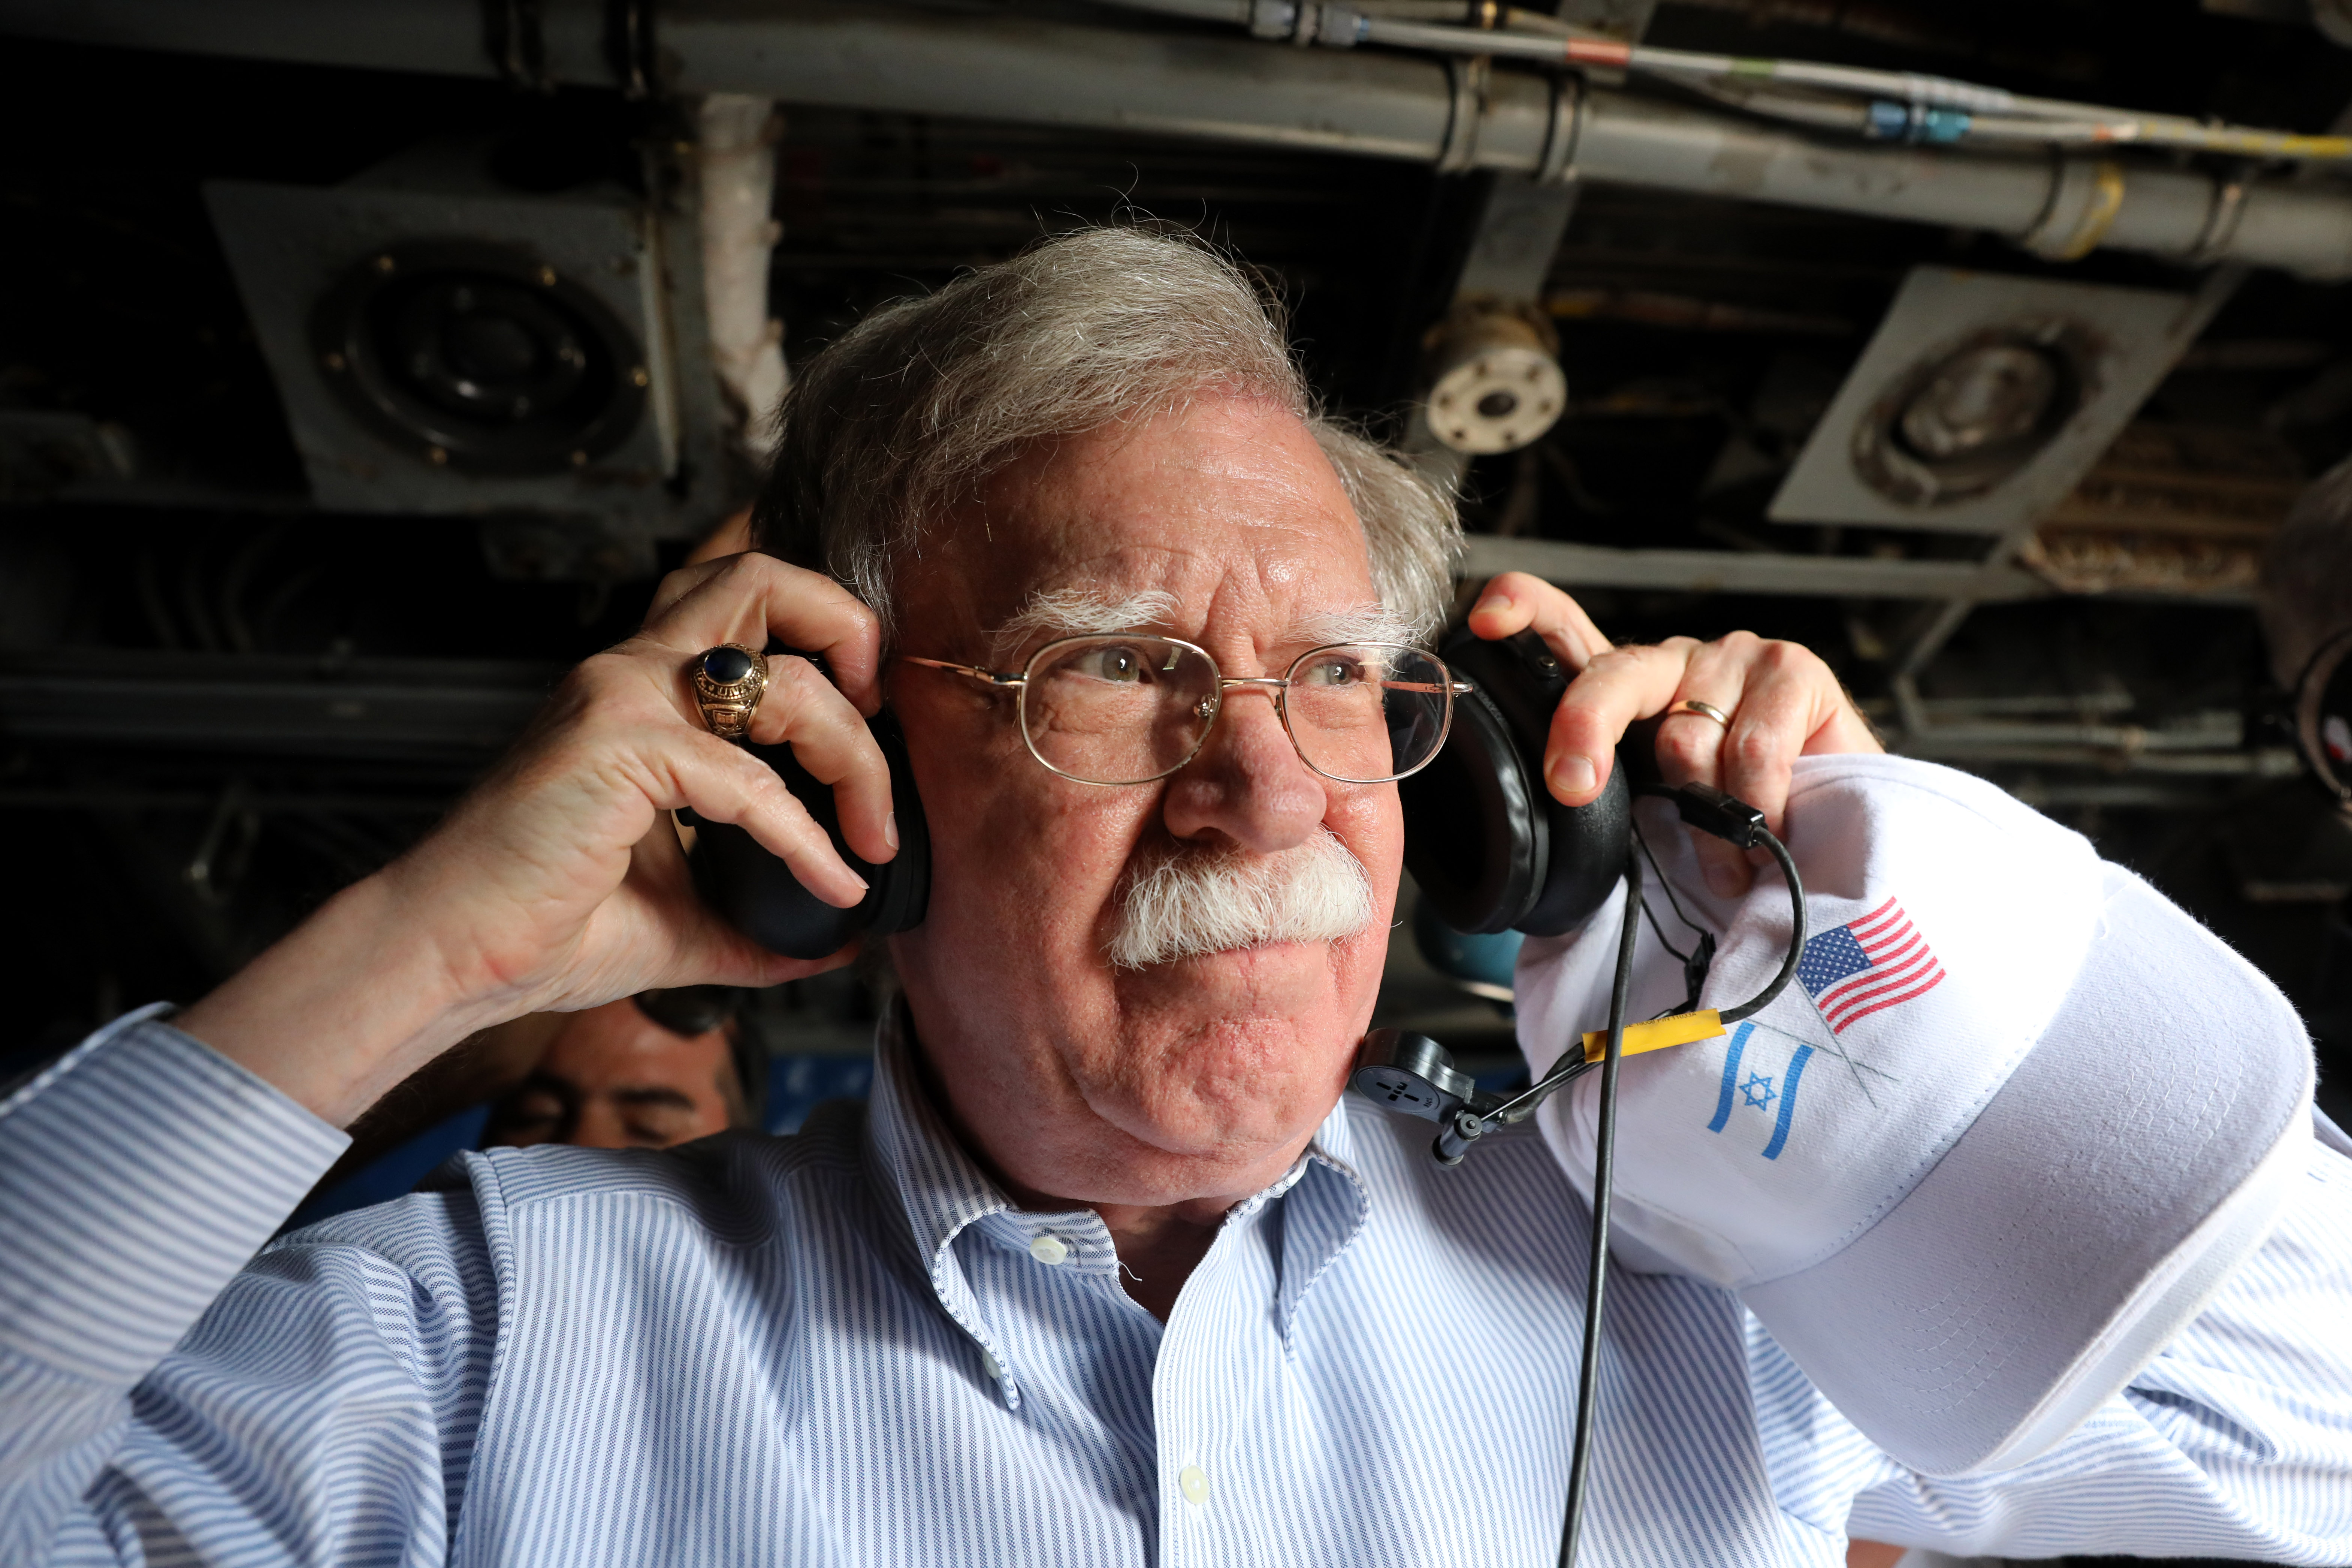 US National Security Advisor John Bolton grabs ear protectors during a flight over the Jordan Valley between the Israeli city of Beit Shean and the West Bank Palestinian city of Jericho on June 23, 2019. (Photo by ABIR SULTAN / POOL / AFP) (Photo credit should read ABIR SULTAN/AFP/Getty Images)